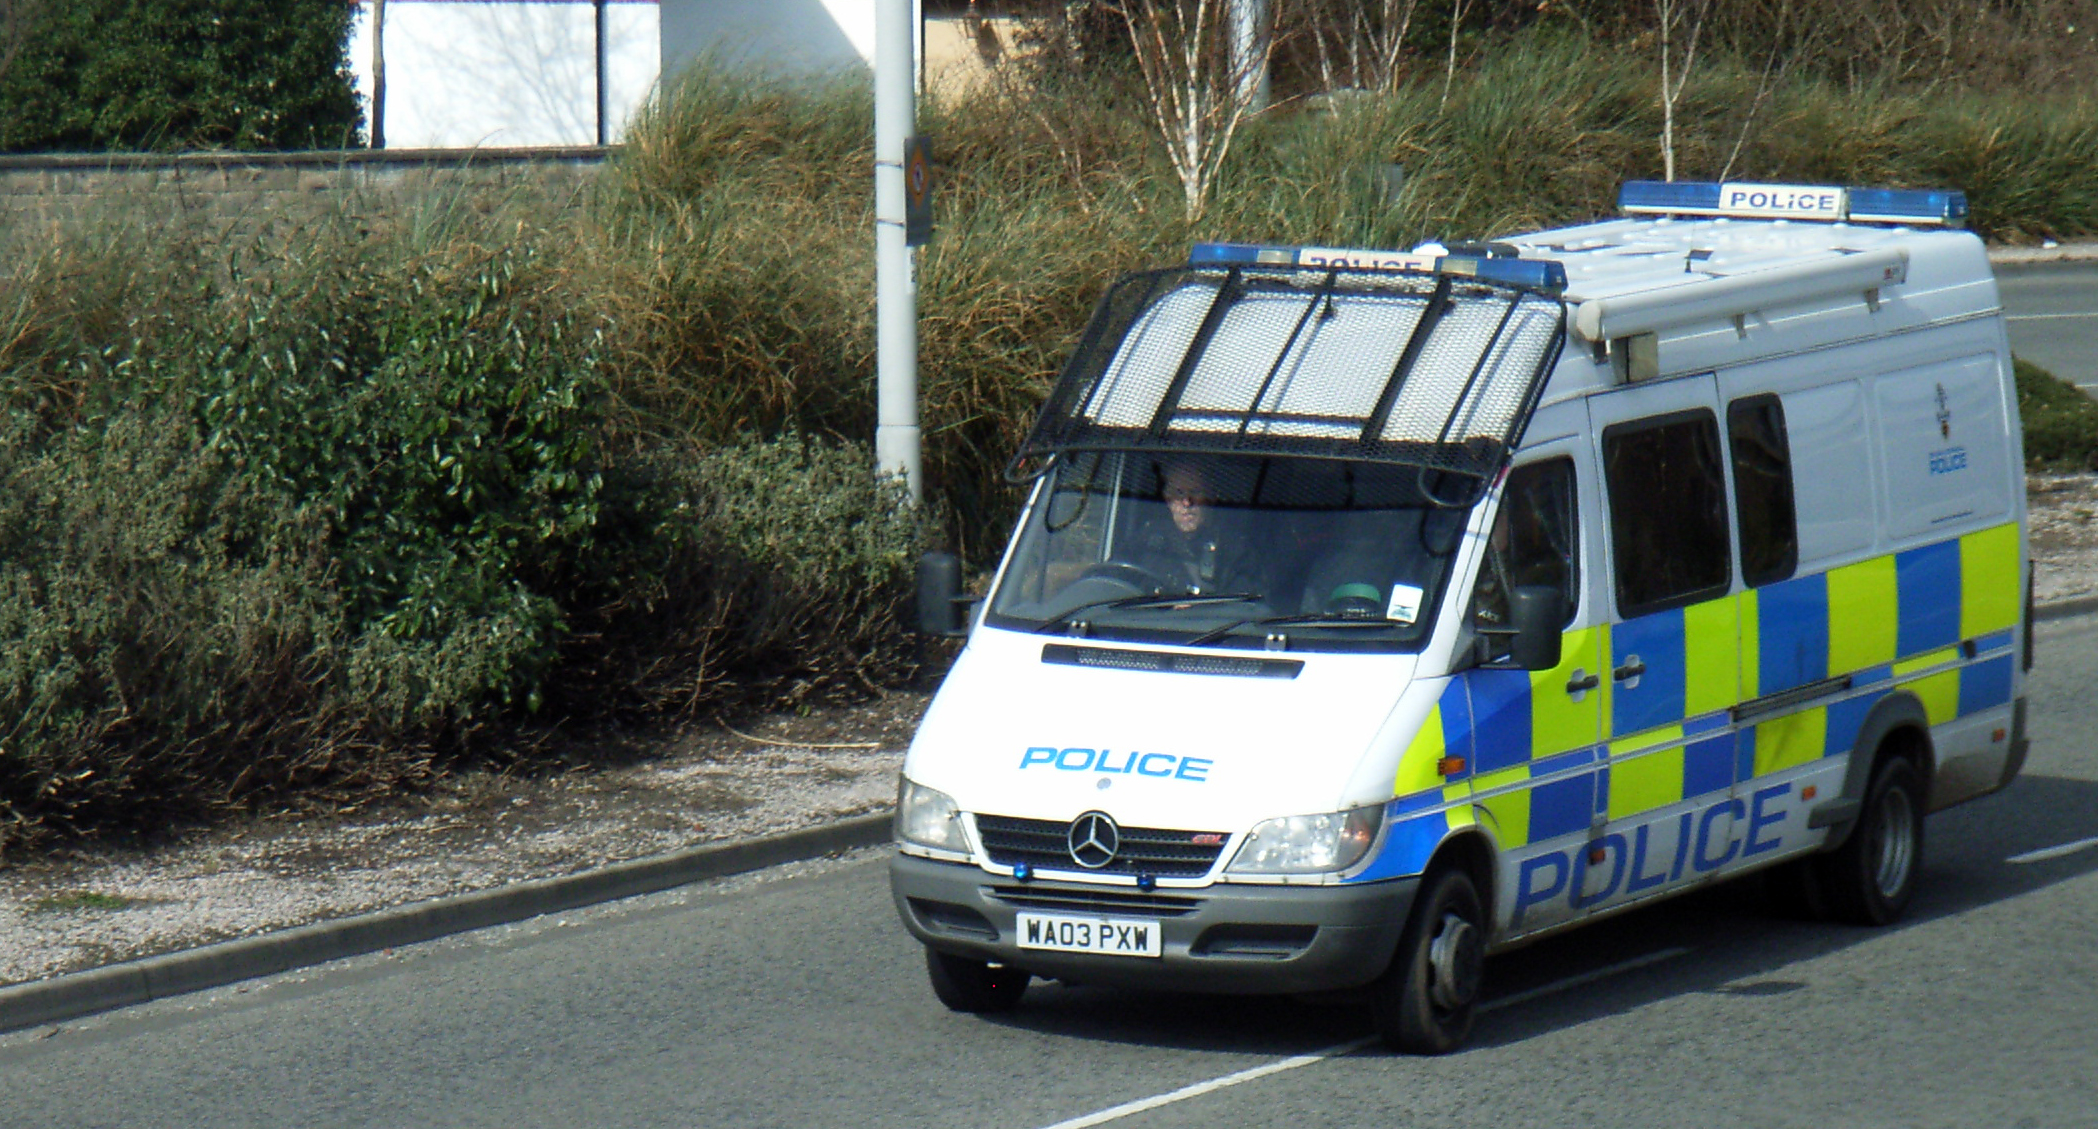 File:Devon and Cornwall Police WA03PXW jpg - Wikimedia Commons